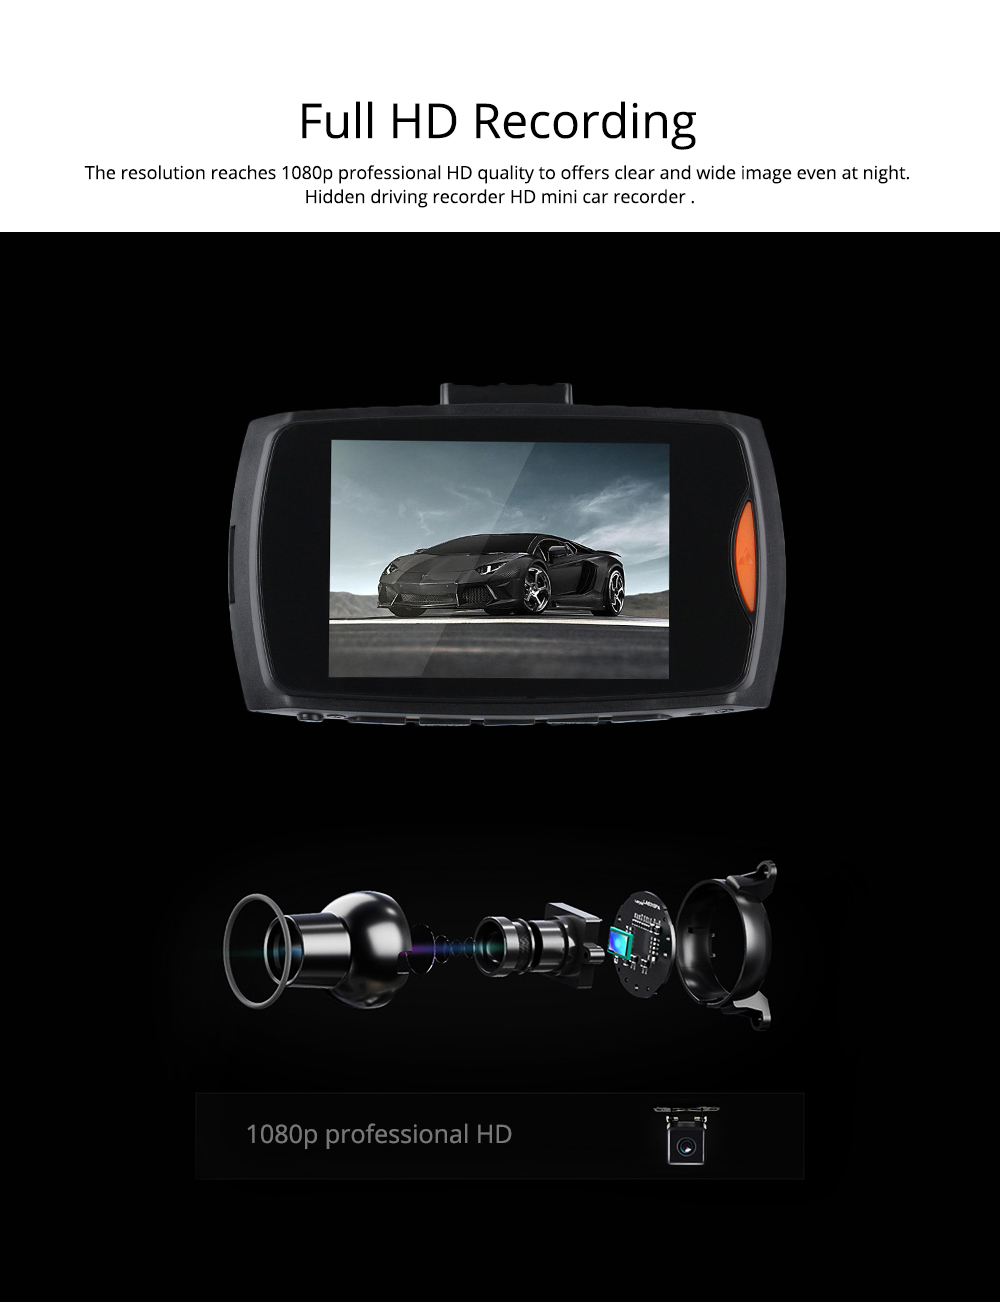 1080p Hd Dual Lens Driving Recorder, 170 Degree Windshield Vehicle Driving Recorder For Motion Detection 1